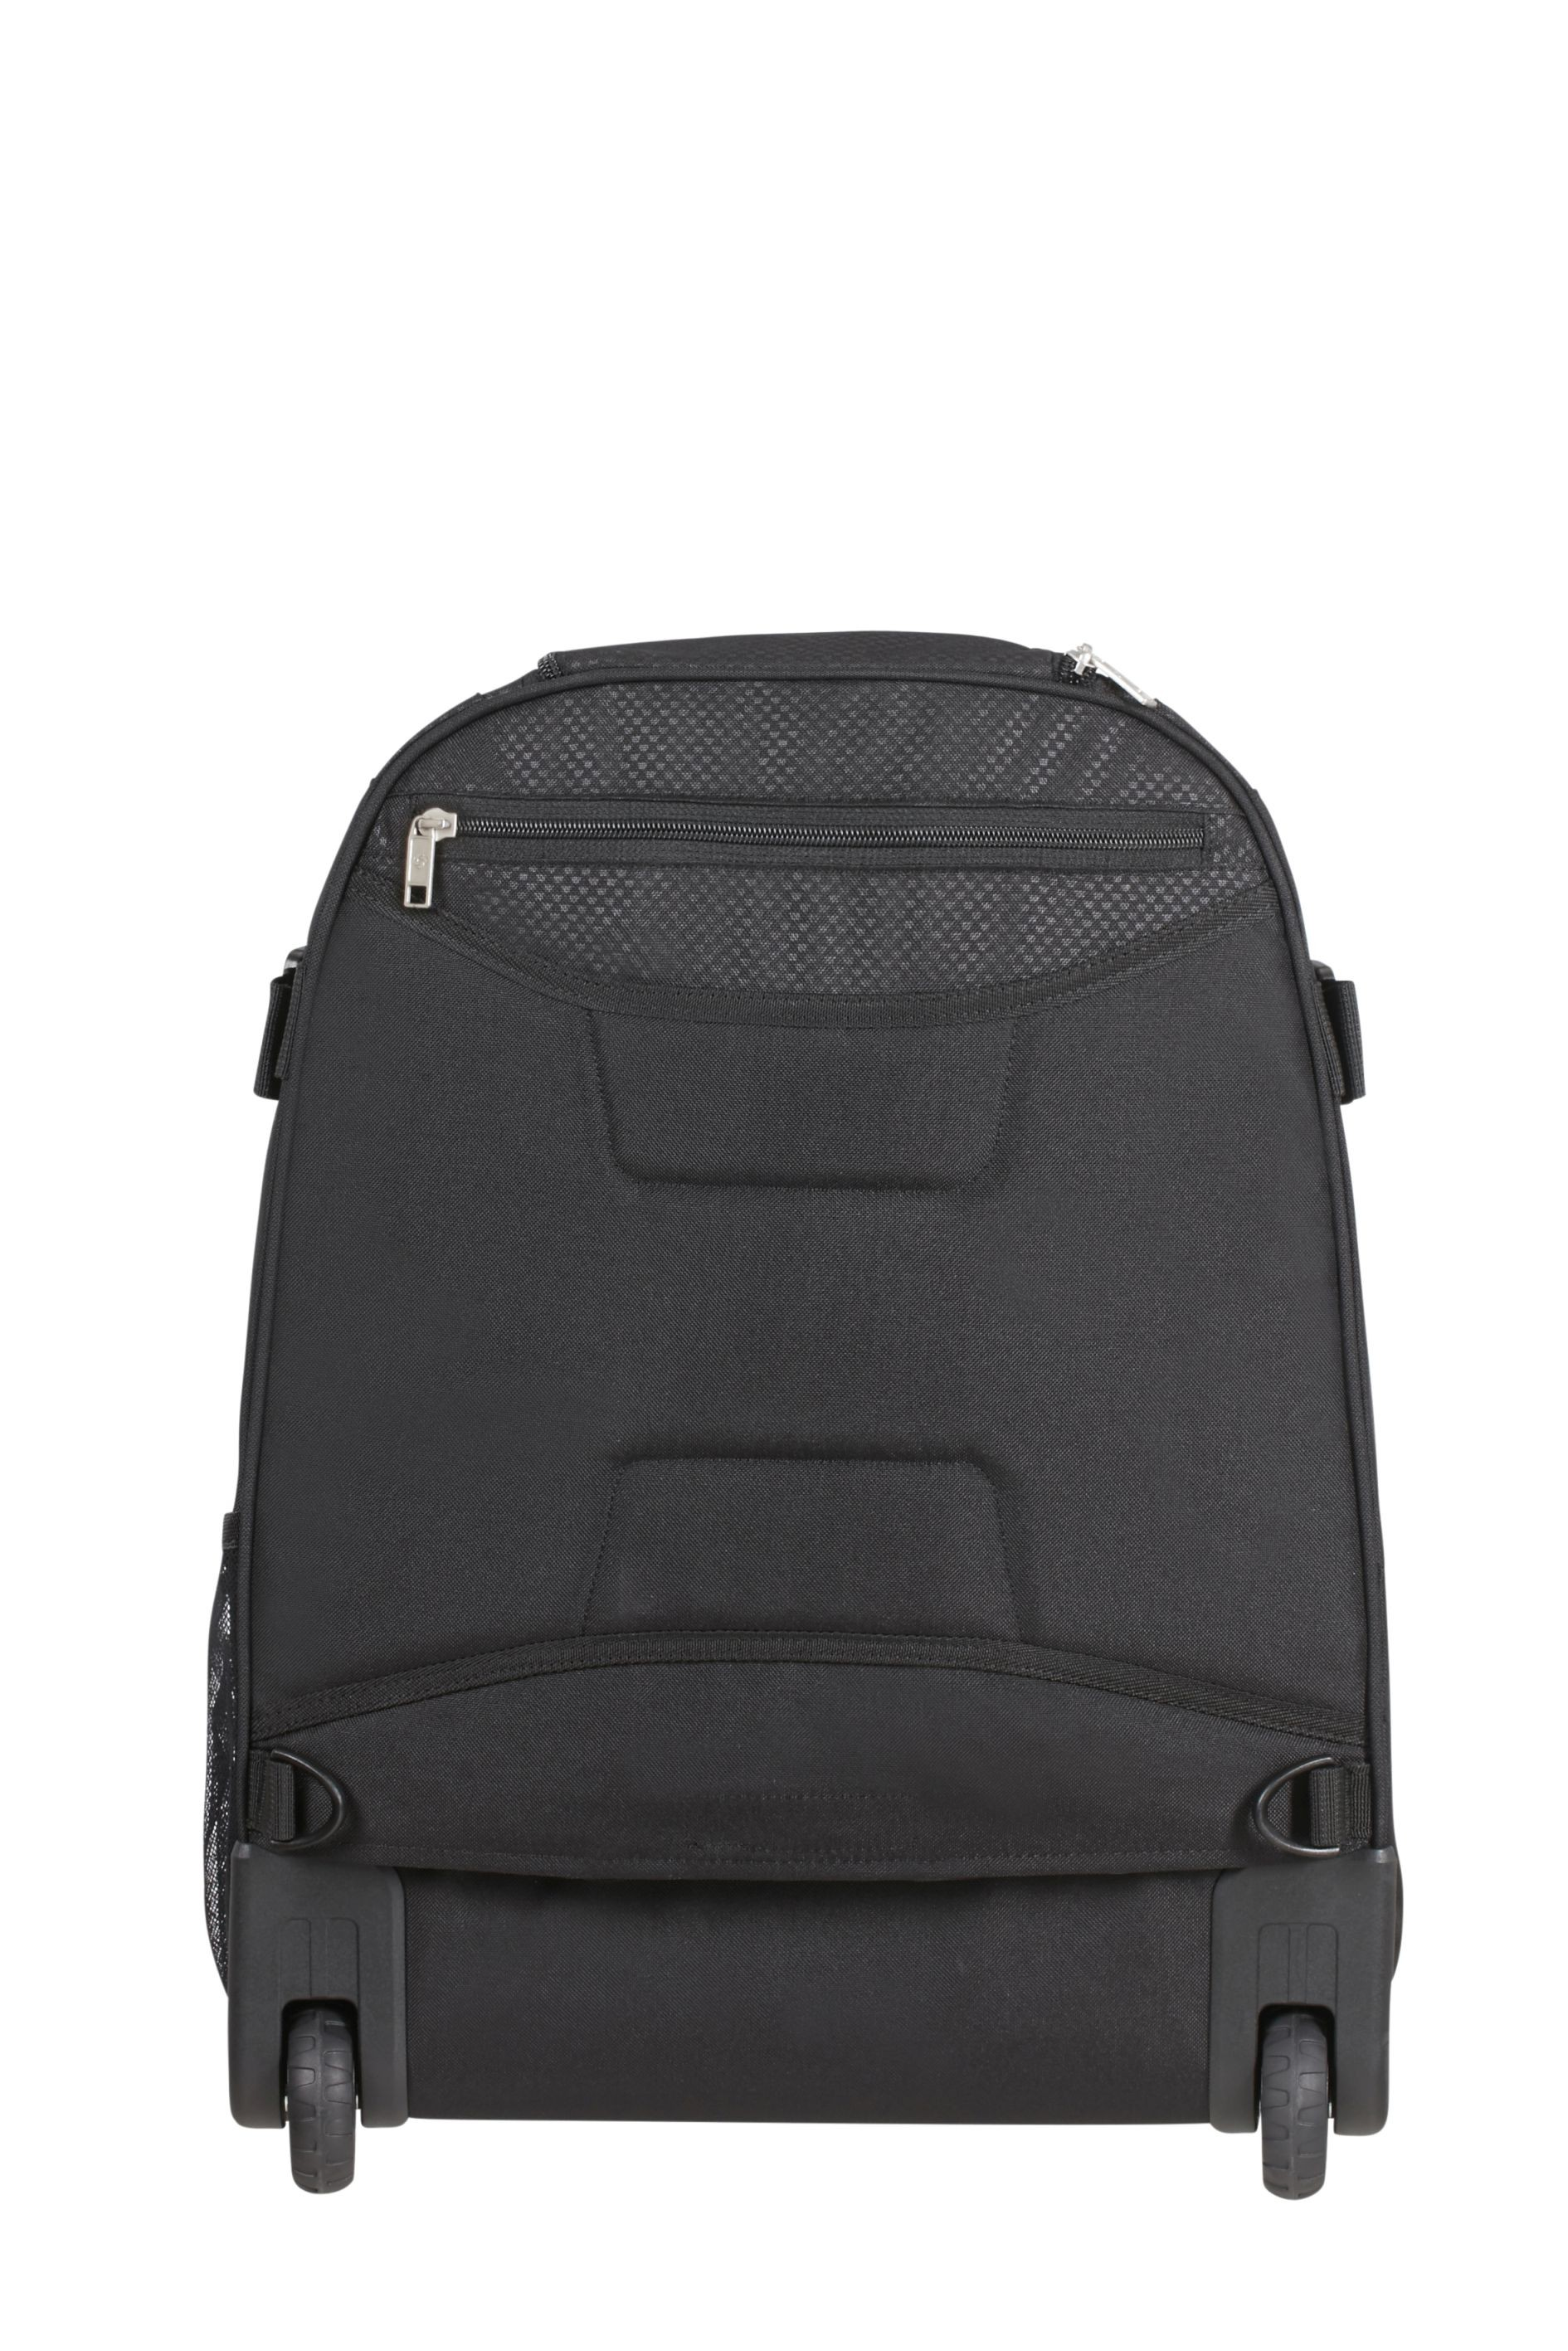 Samsonite Sonora Laptop Backpack/wh 55, View 5